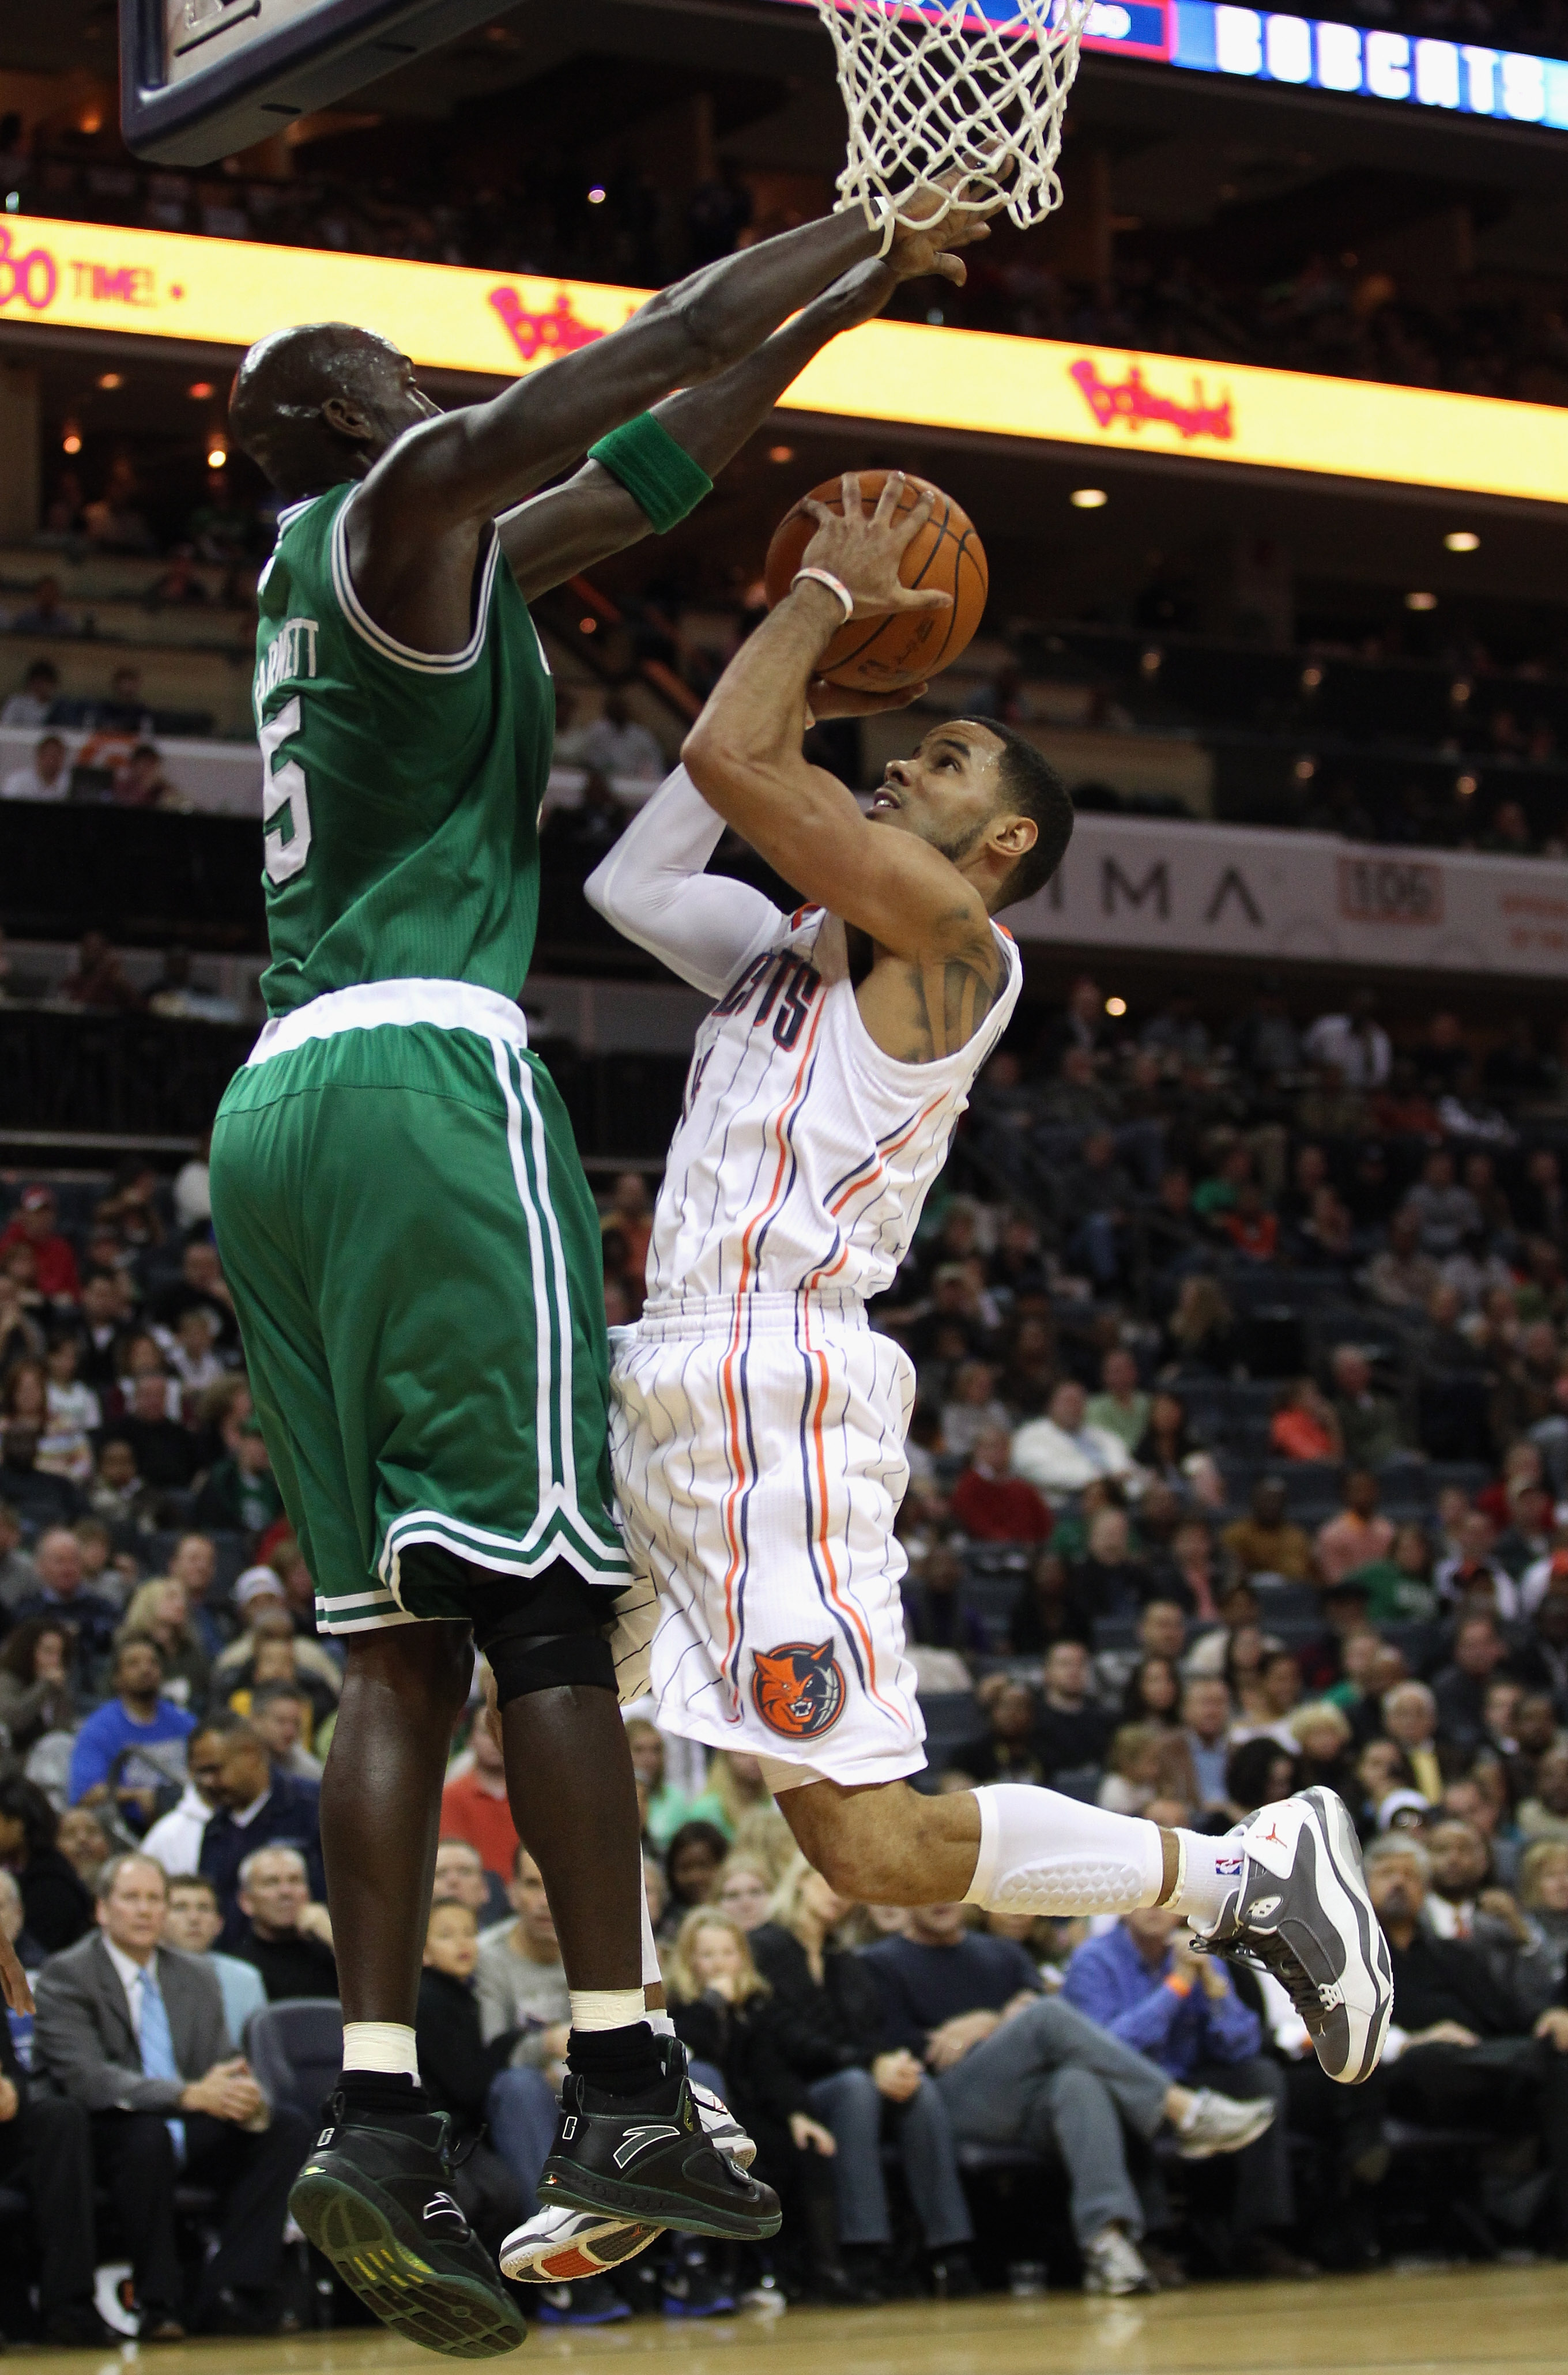 CHARLOTTE, NC - DECEMBER 11:  Kevin Garnett #5 of the Boston Celtics tries to stop D.J. Augustin #14 of the Charlotte Bobcats during their game at Time Warner Cable Arena on December 11, 2010 in Charlotte, North Carolina. NOTE TO USER: User expressly ackn